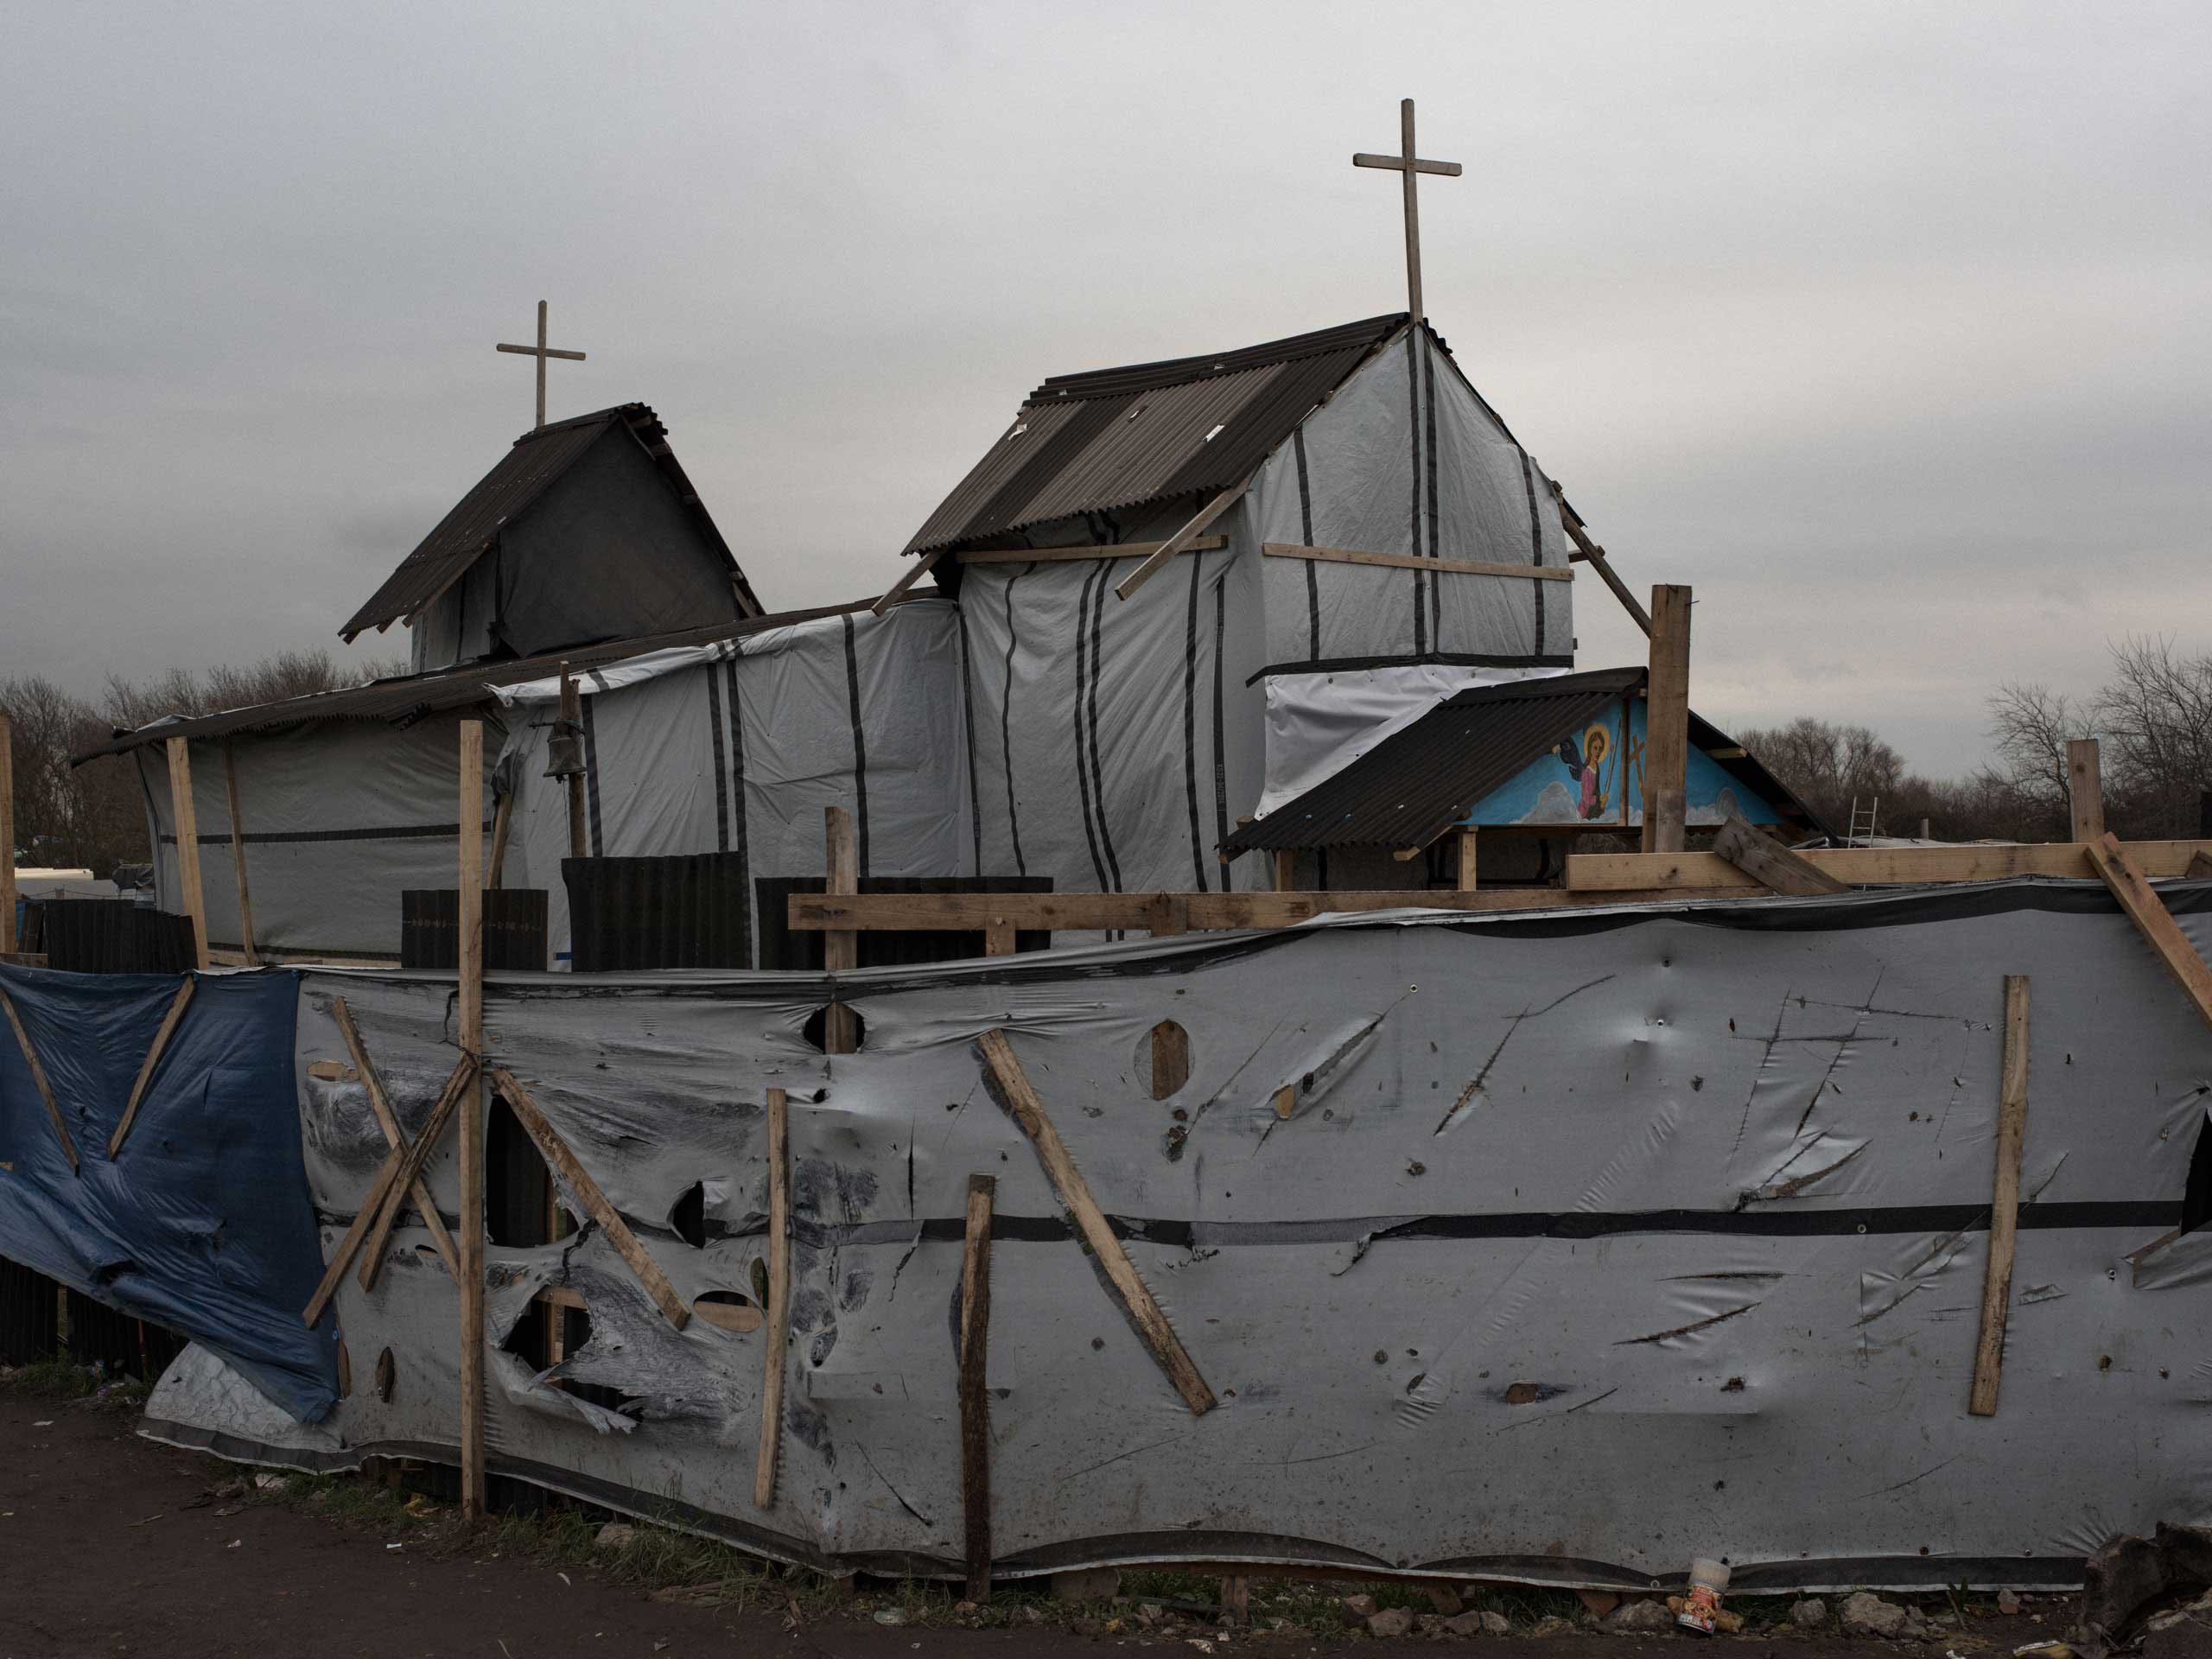 The makeshift church for the Ethiopian and Eritrean community is known as St. Michael's Calais in the  jungle  of Calais, France, Nov. 27, 2015.